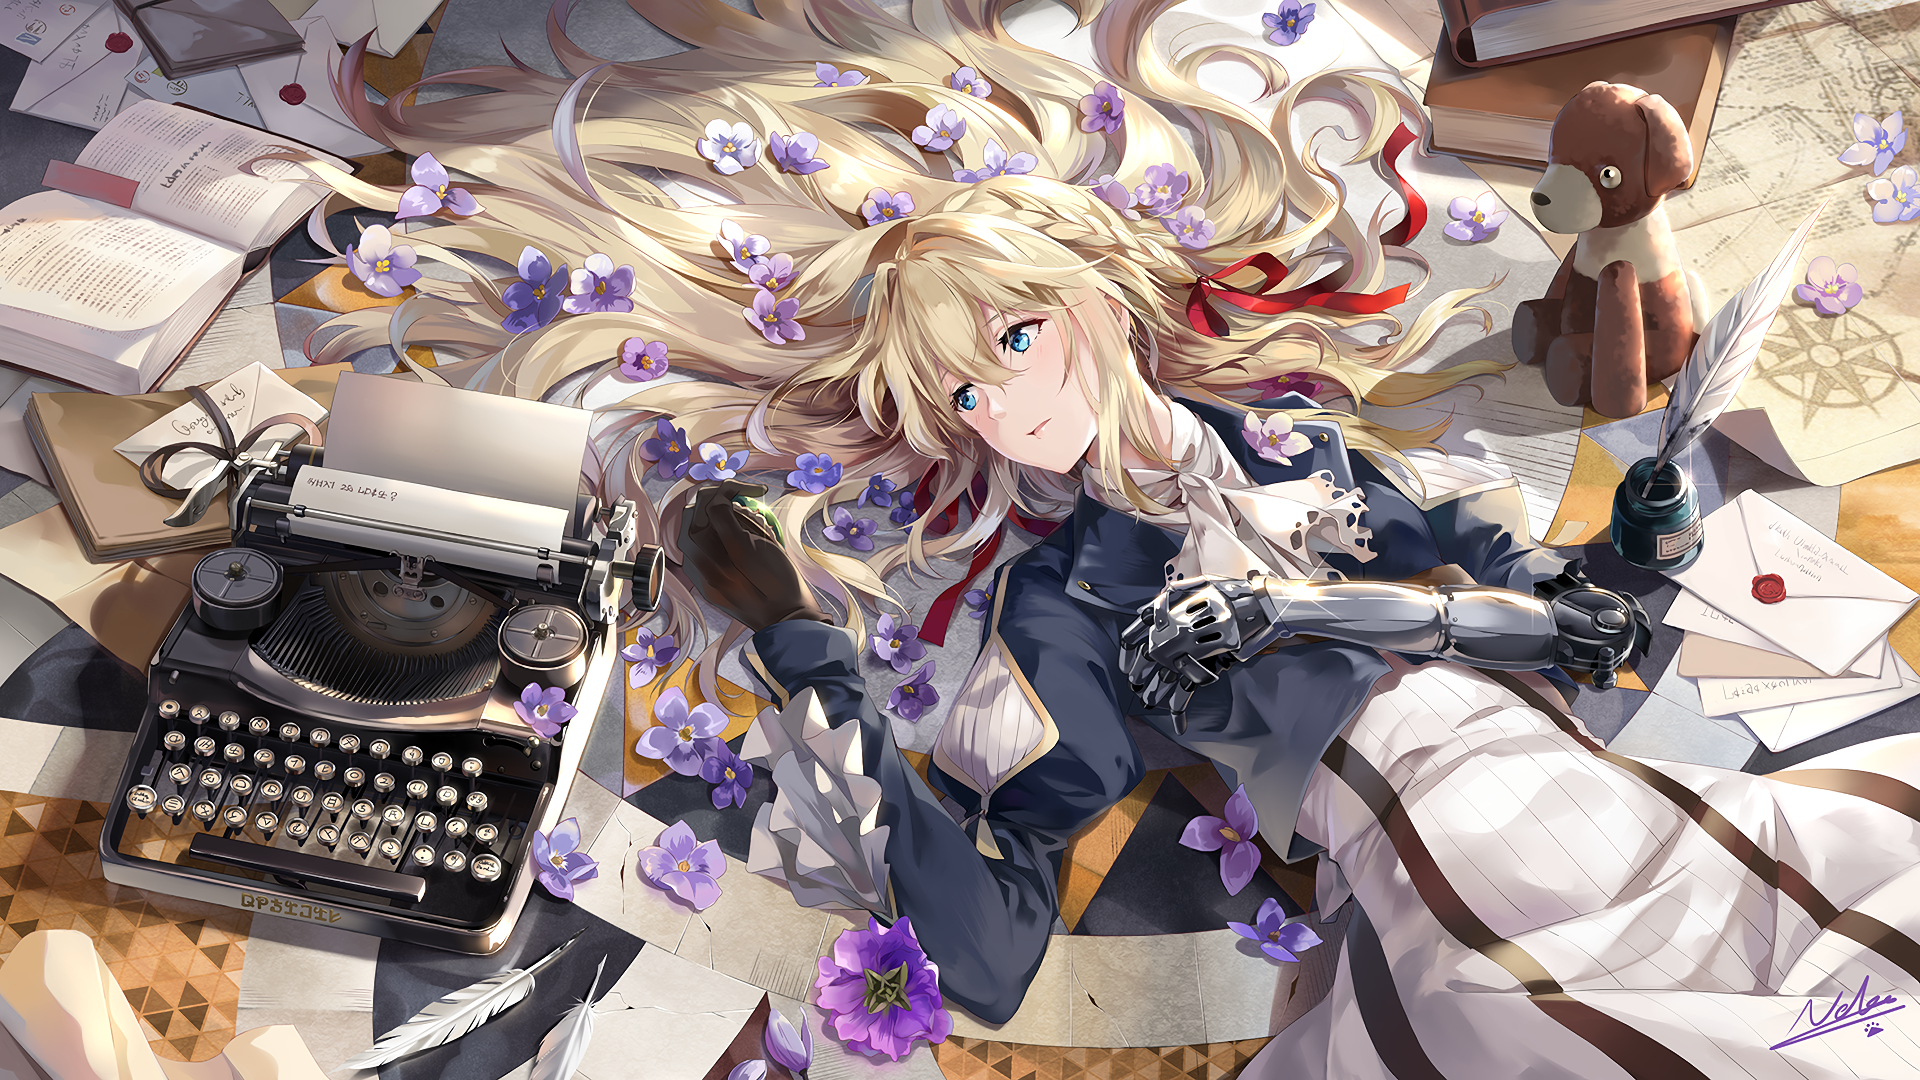 310 violet evergarden character hd wallpapers background images